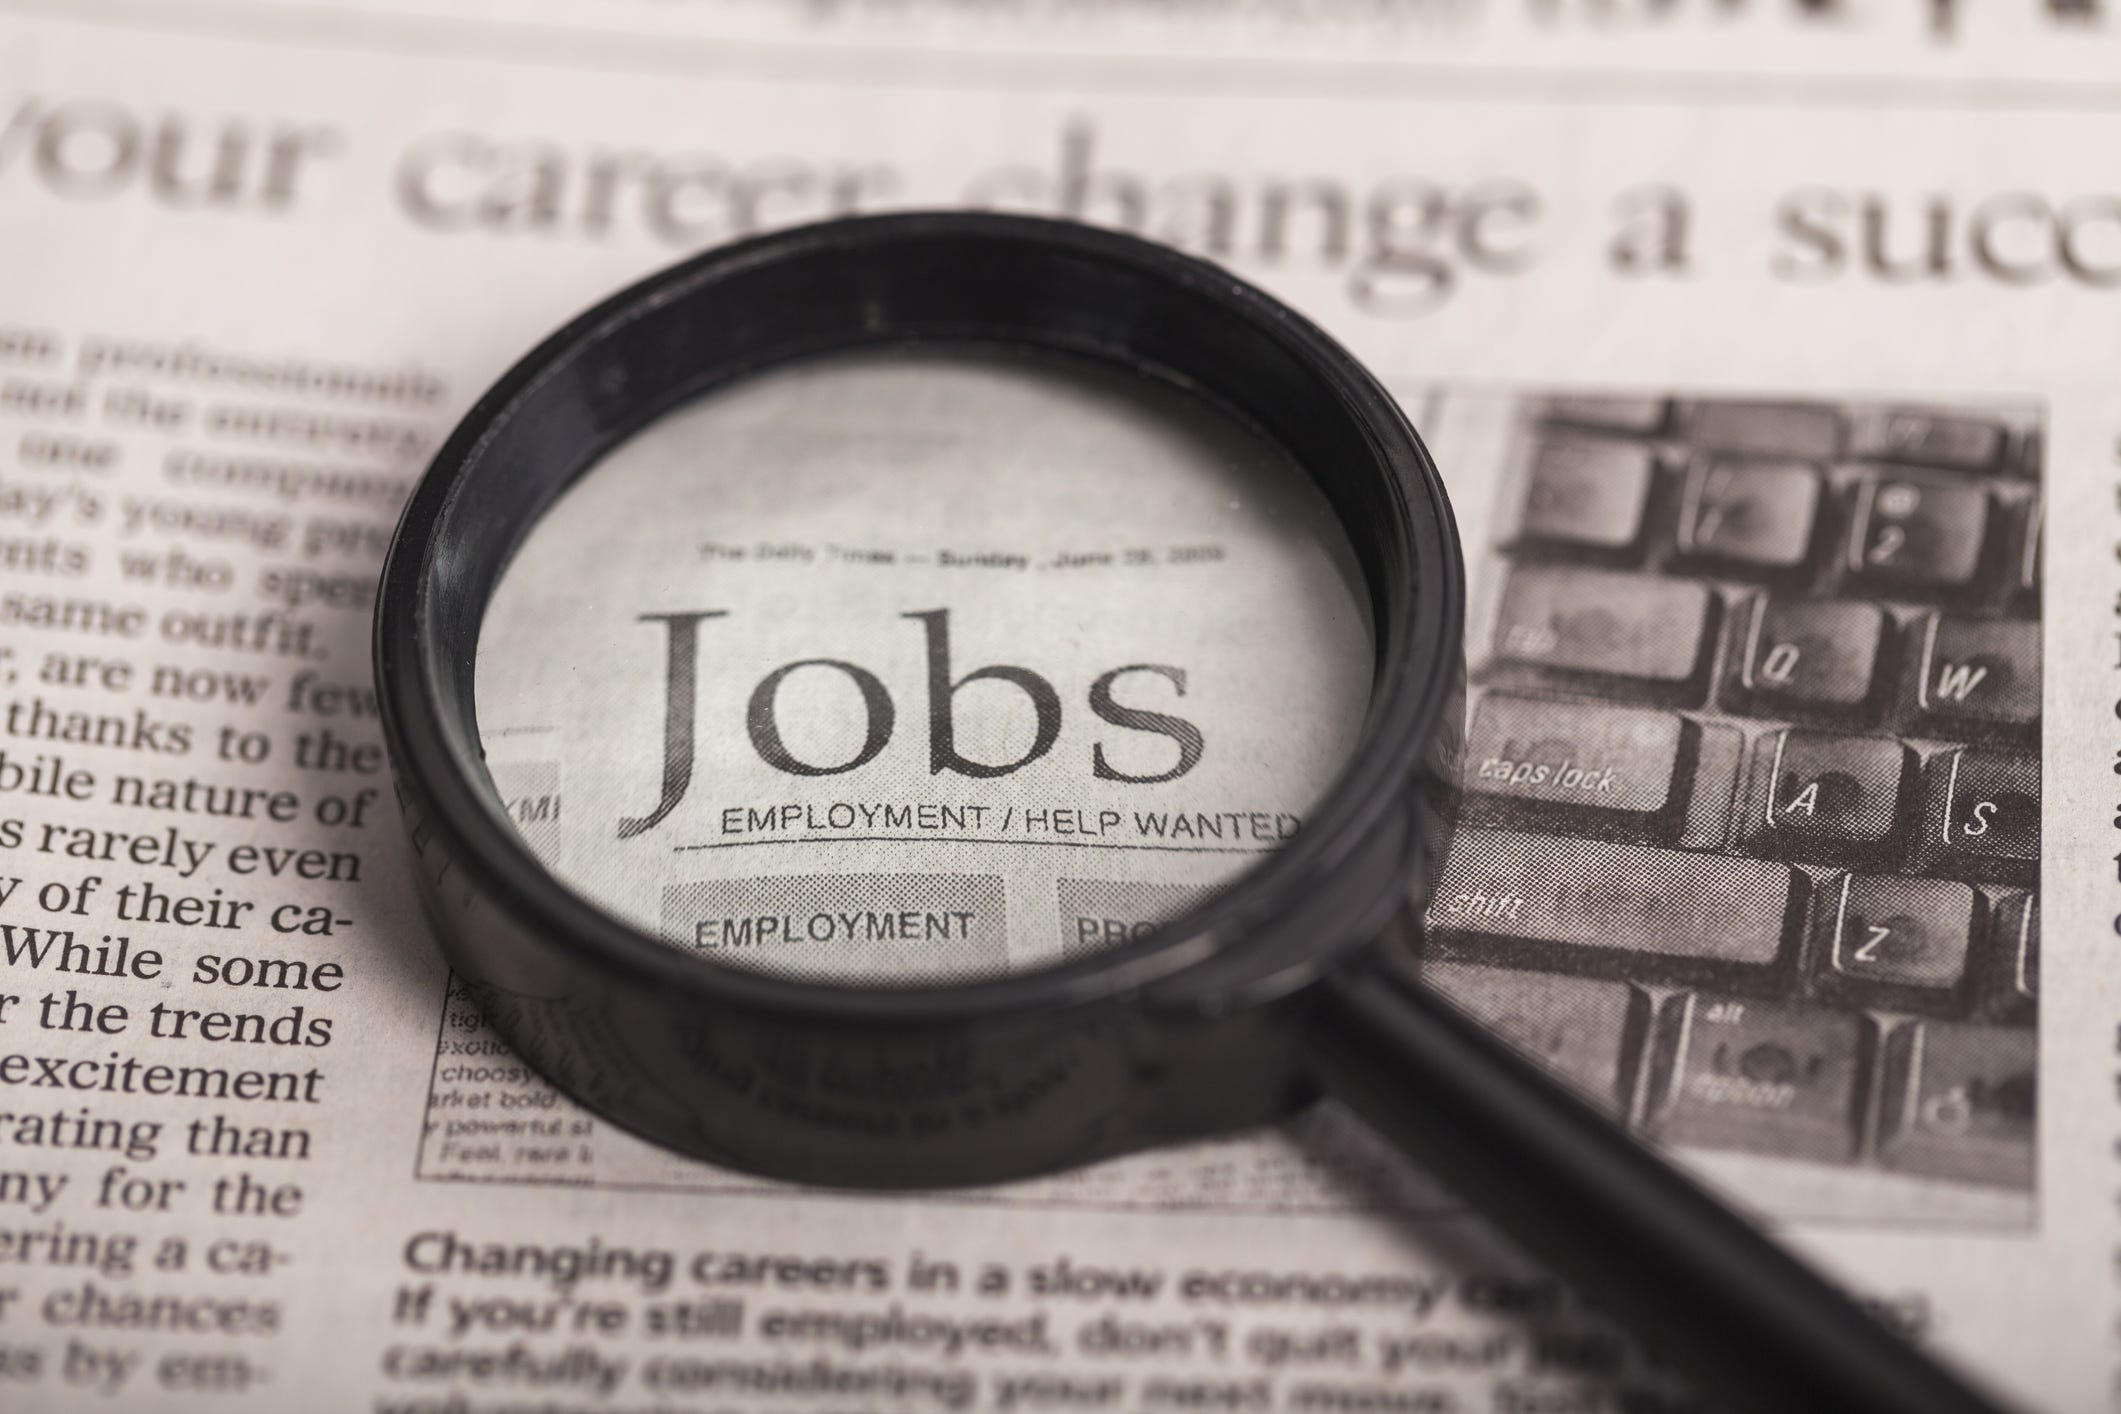 Hiring as a small business? Follow this advice